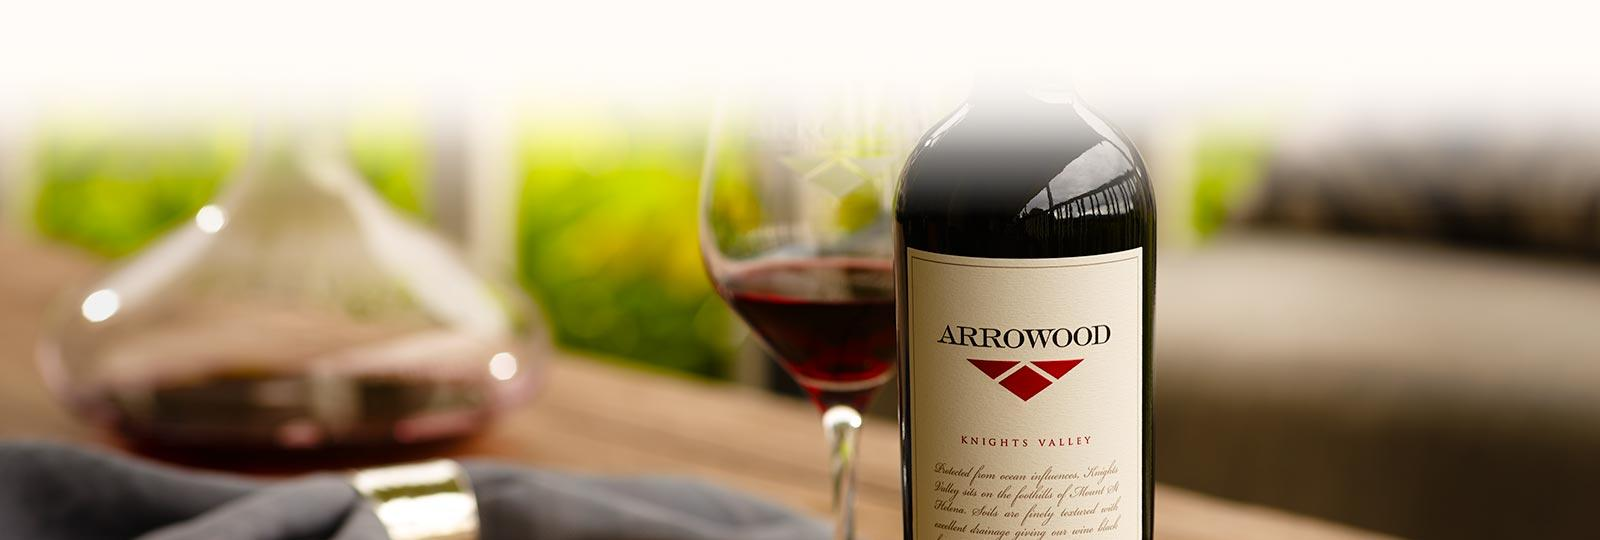 Arrowood wine on table next to a glass